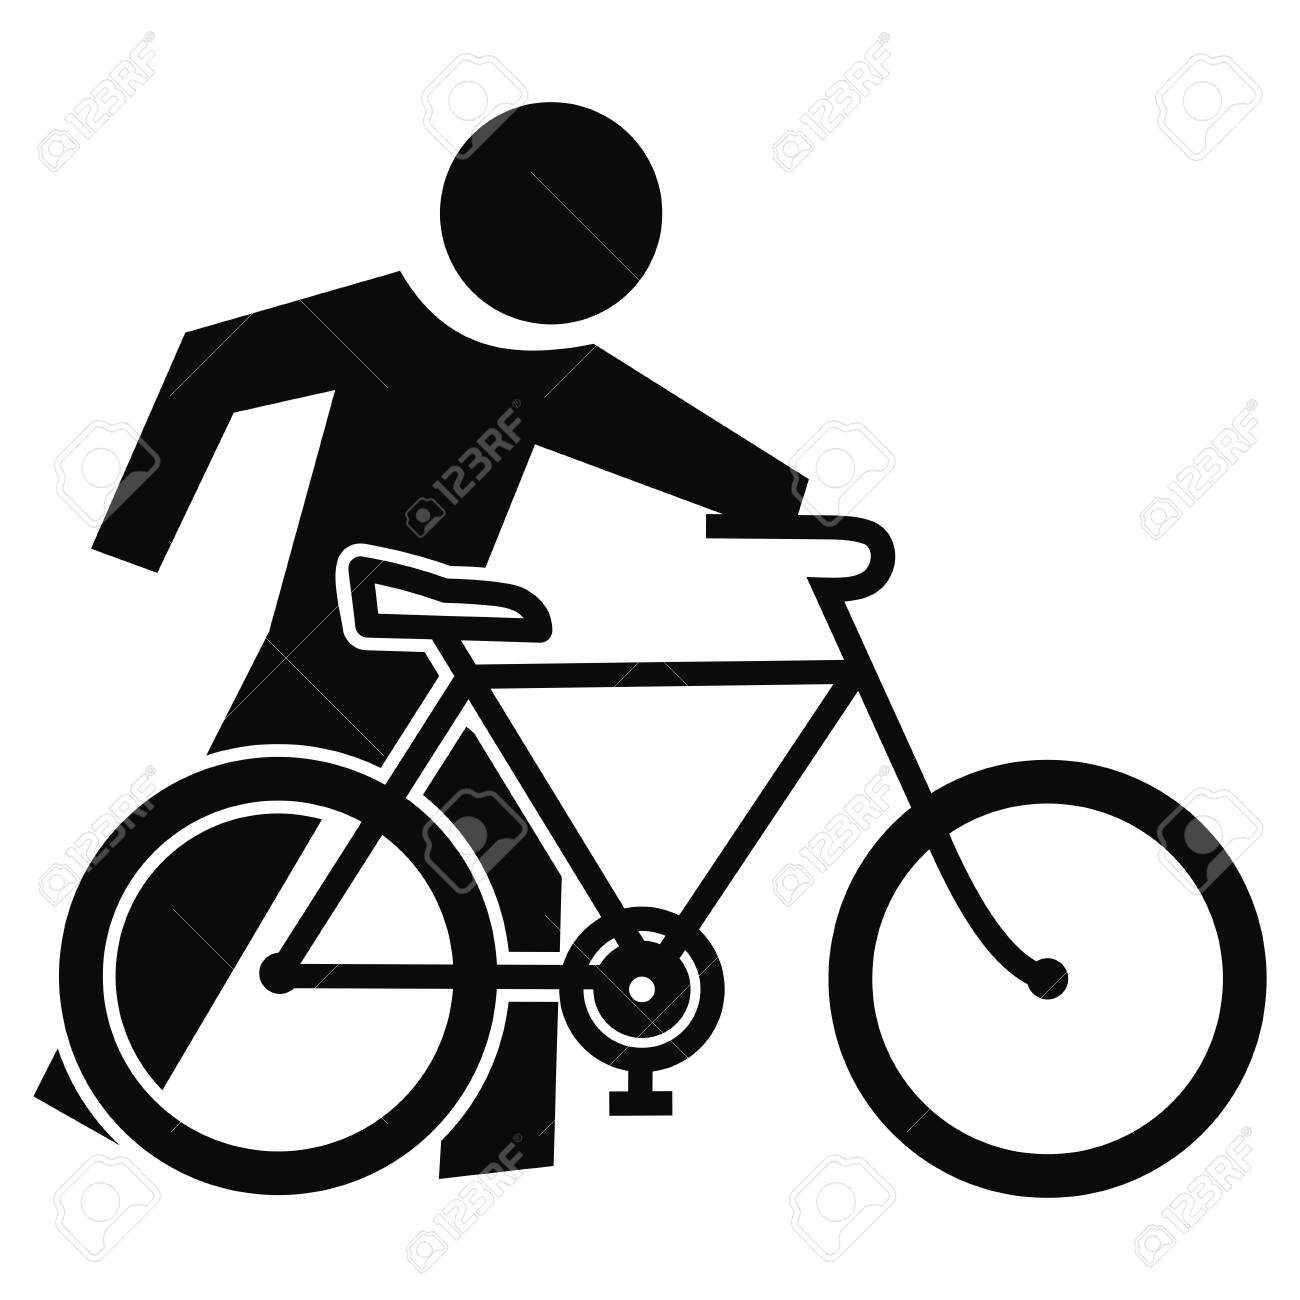 Cyclist, Get Off The Bike, go to the bike, vector icon, eps Black silhouette of cyclist. - 128435731